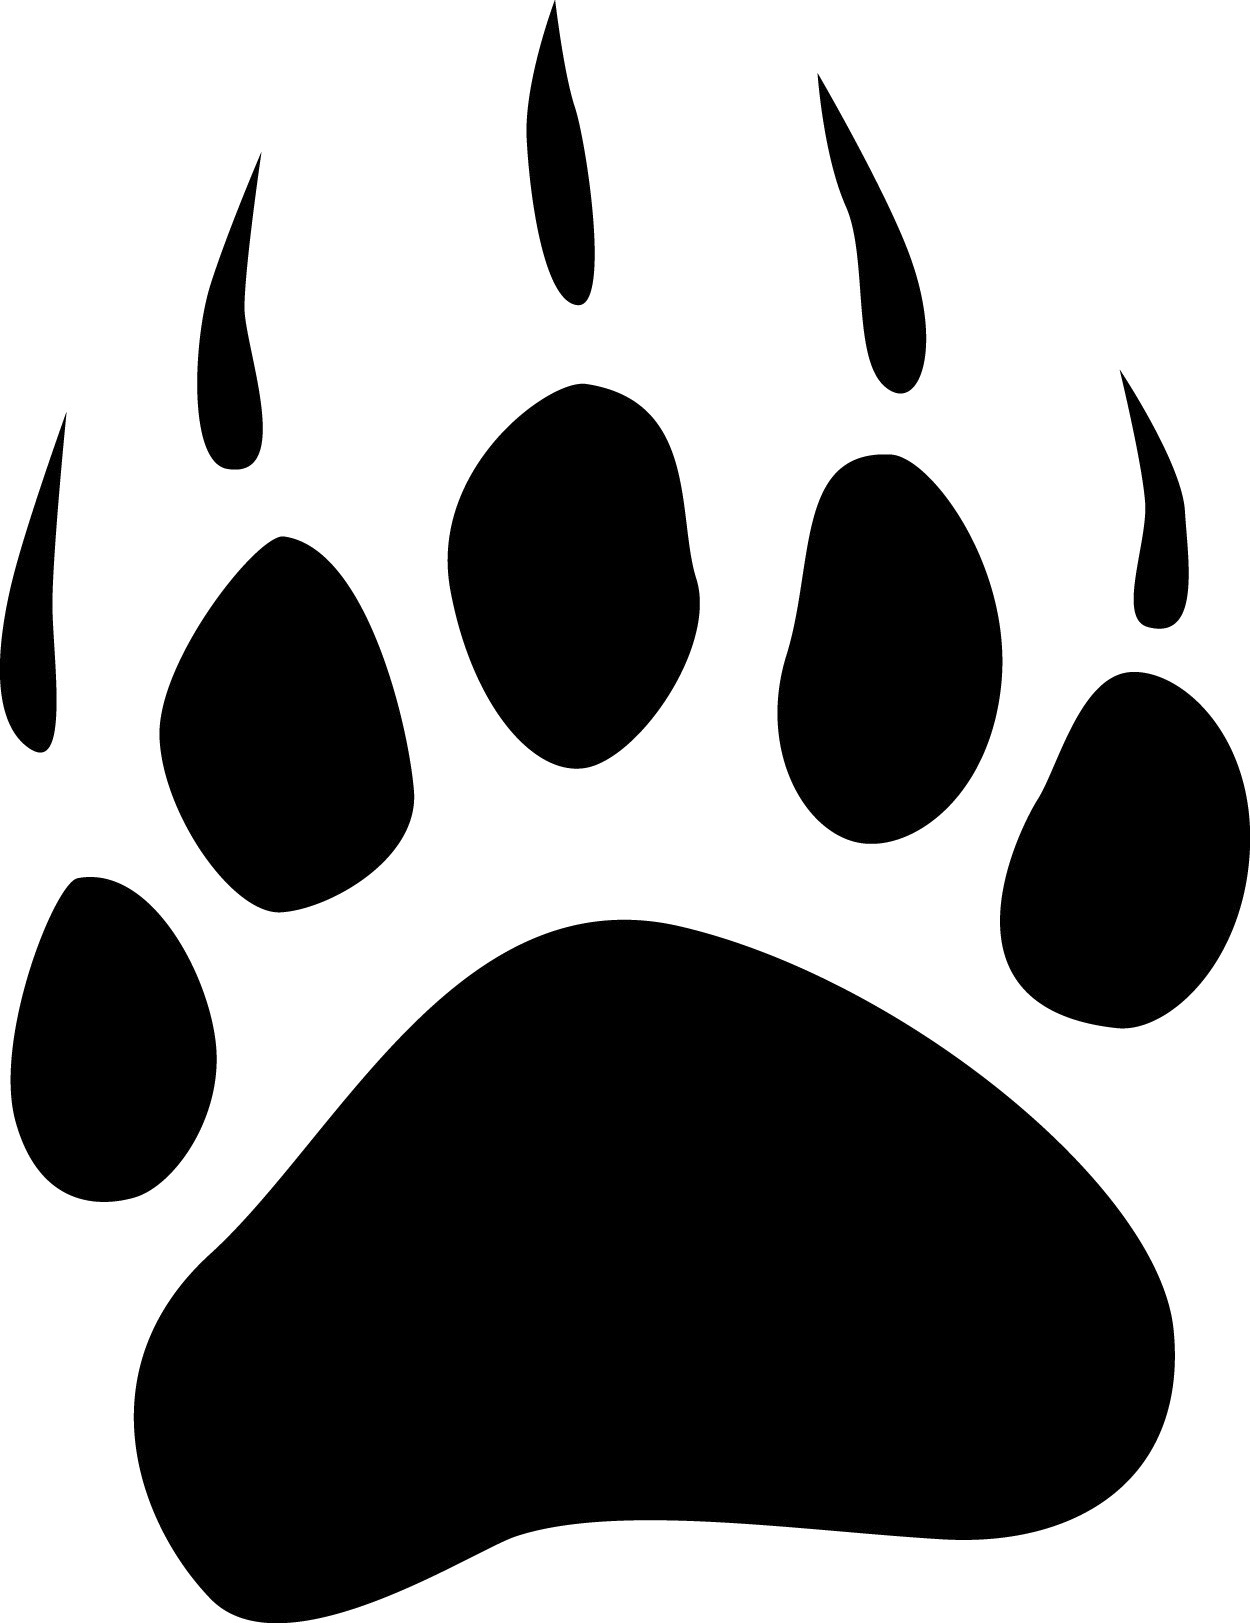 1250x1623 Grizzly Bear Paw Print Clipart Free Images 2